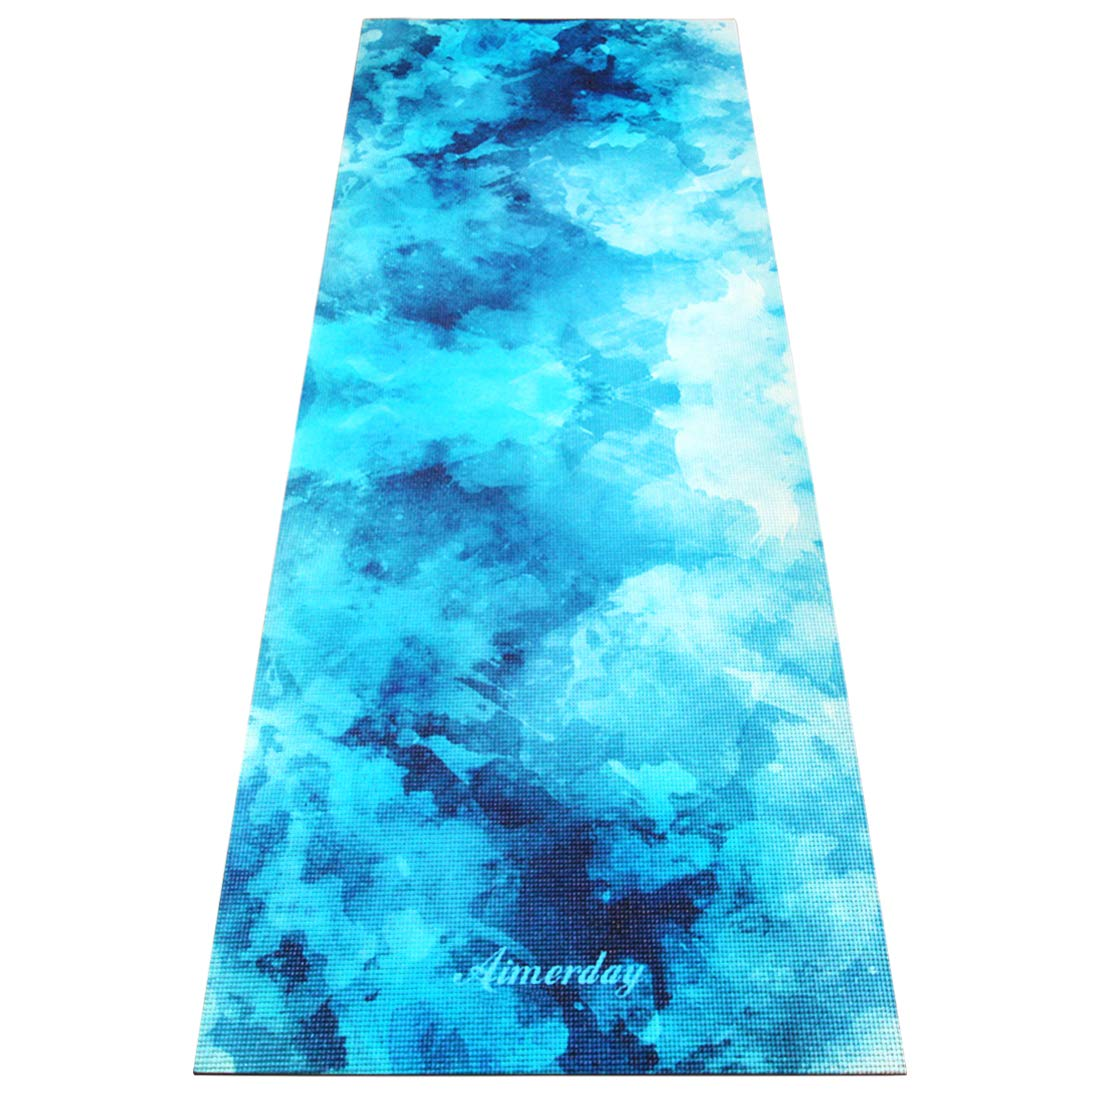 AIMERDAY Yoga Mat Premium Print Non Slip Eco Friendly Pilates Mat 72 inch  1/4 inch Thick Fitness Exercise Mat, Home Gym Workout Mat with Carrying